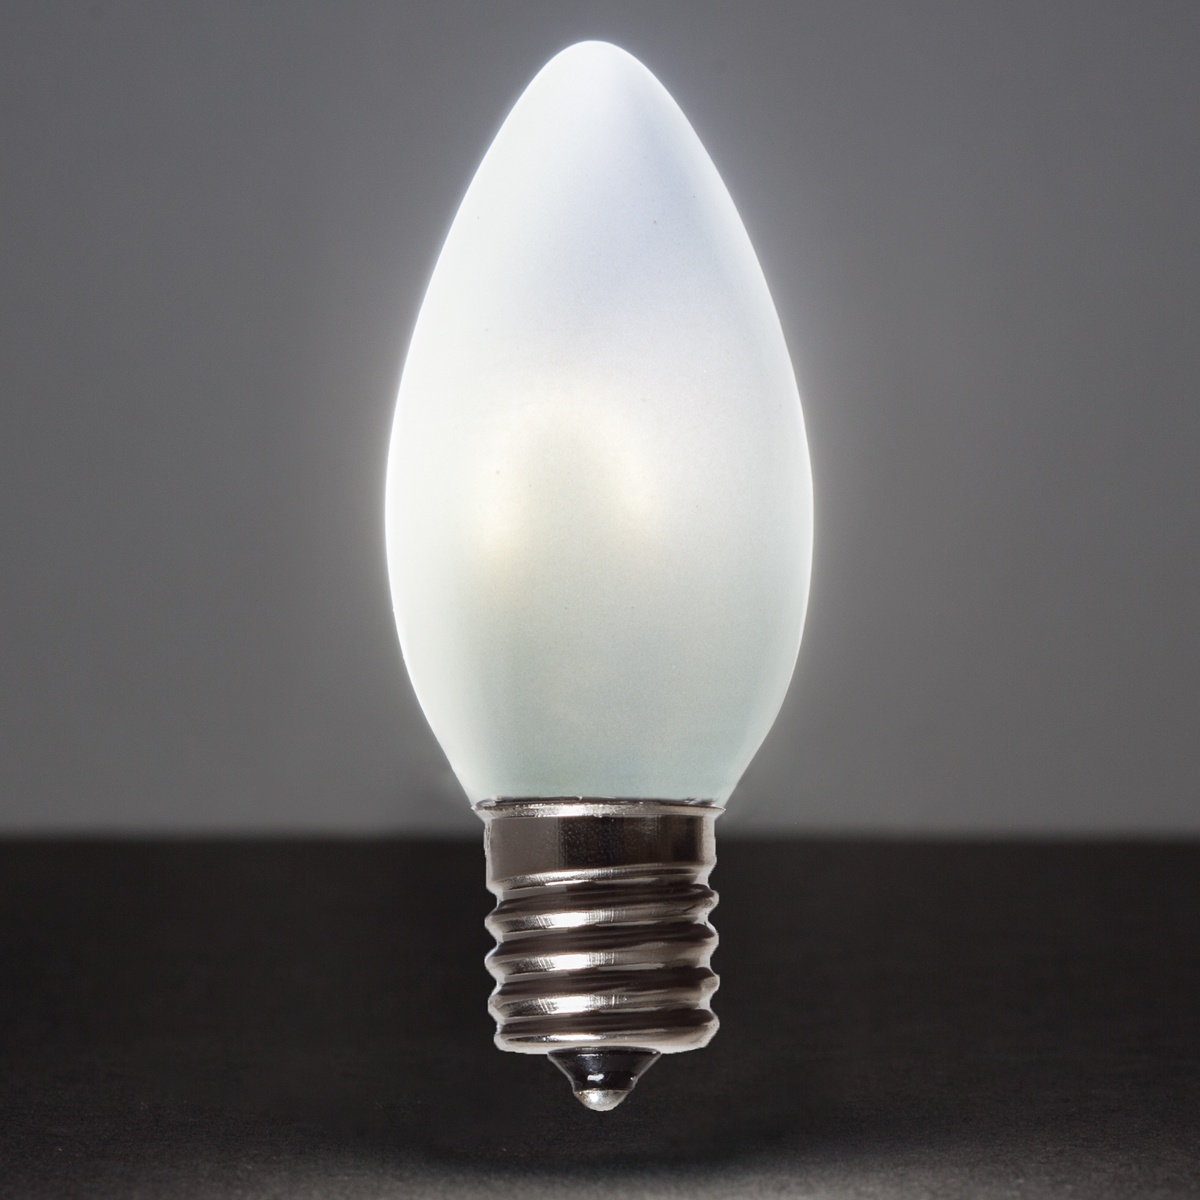 c9 cool white glass flexfilament tm led vintage christmas light bulb satin. Black Bedroom Furniture Sets. Home Design Ideas